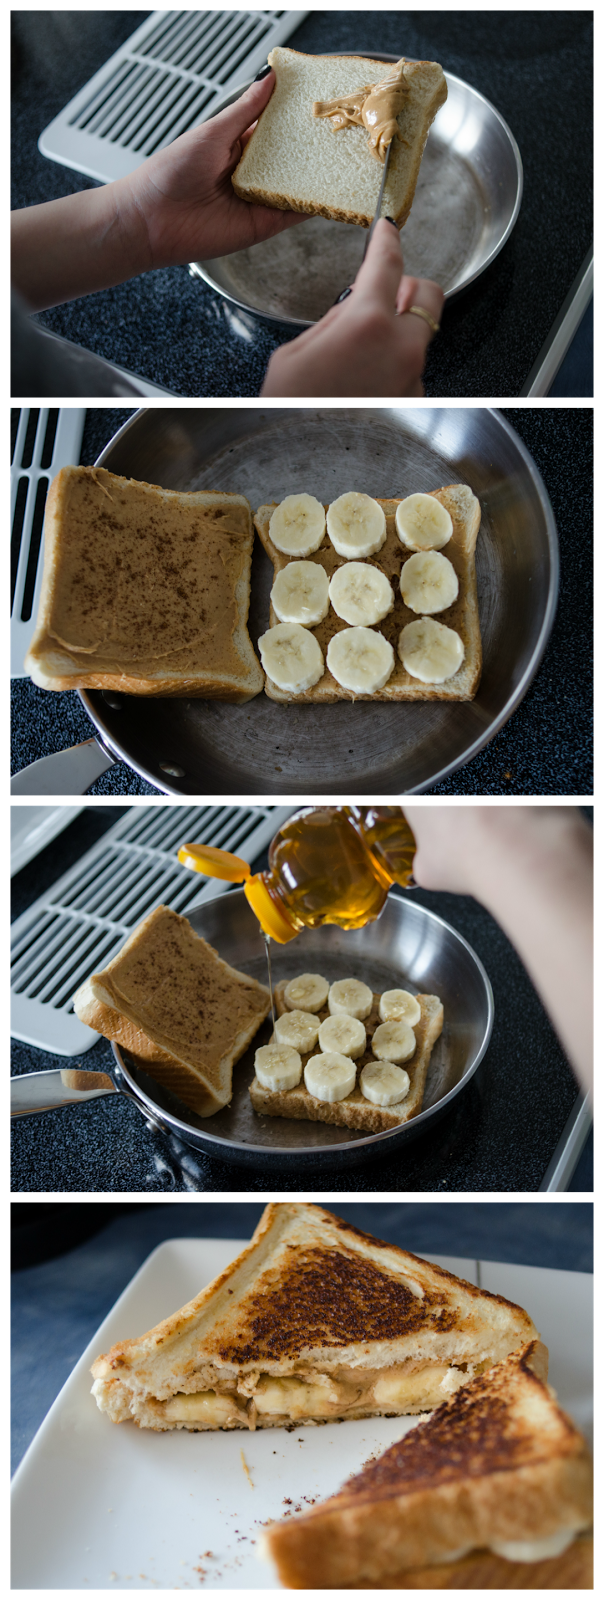 http://lemonthistle.com/happy-pb-day-and-a-quick-brekkie/